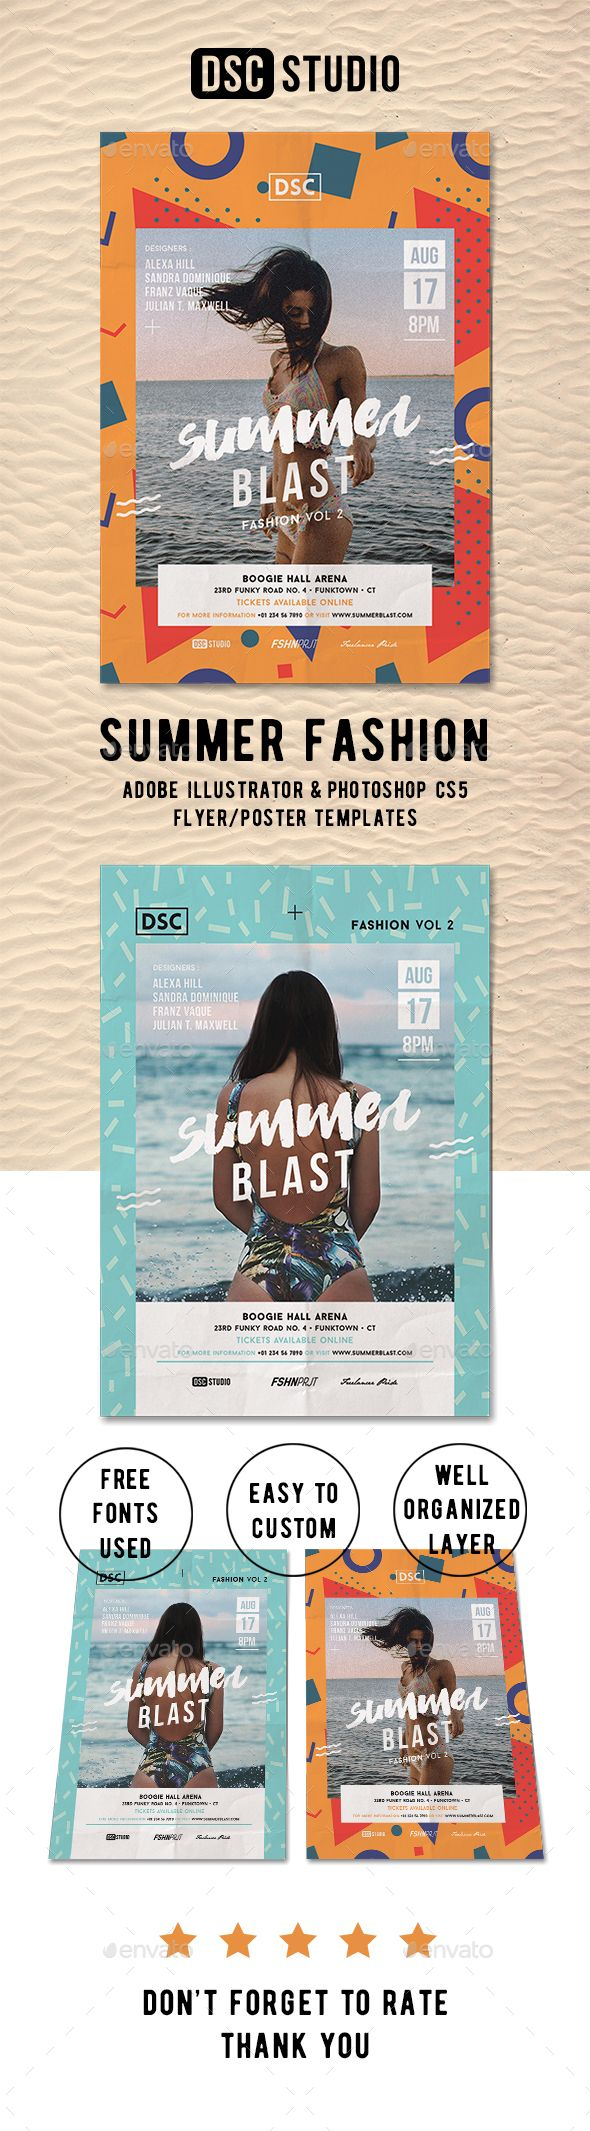 Summer Fashion Flyer Template PSD, AI Illustrator. Download here: https://graphicriver.net/item/summer-fashion-flyer/17348034?ref=ksioks